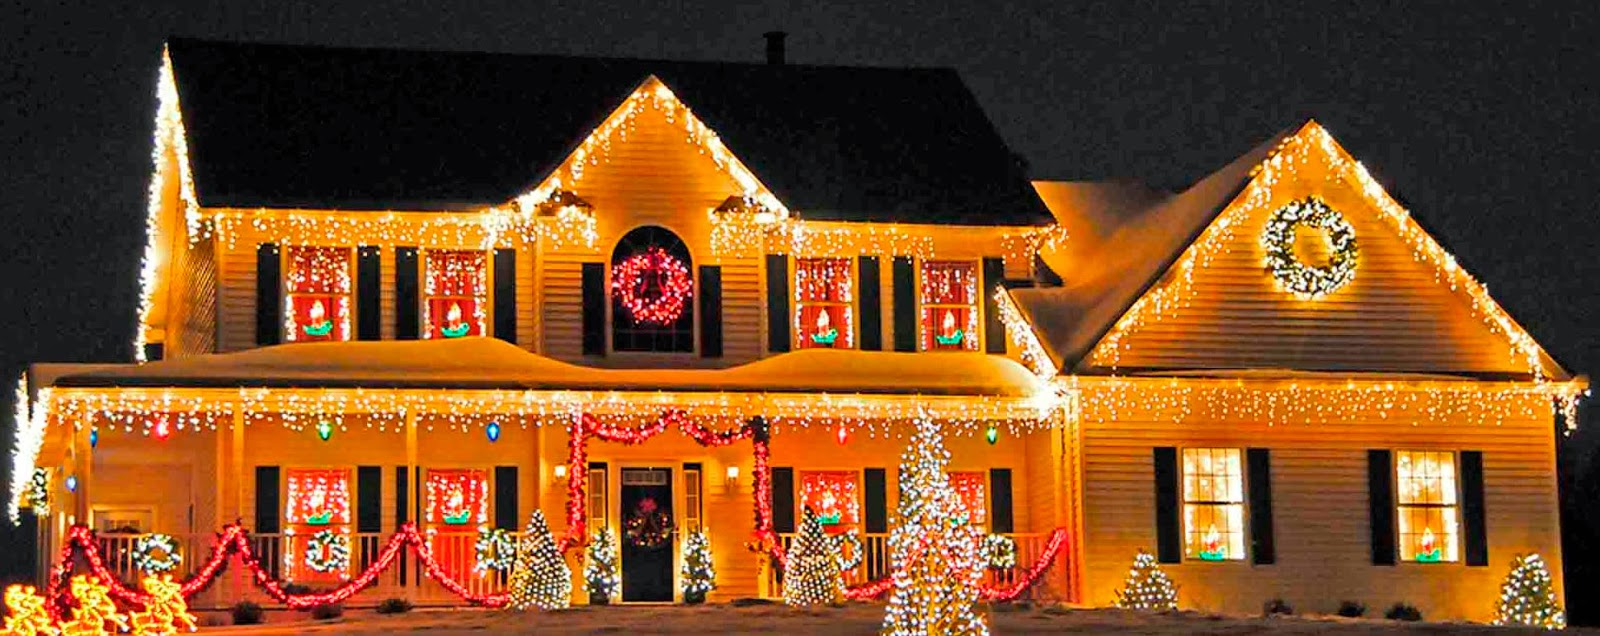 Attractive epiphany in 2014 epiphany images collections Holiday decorated homes